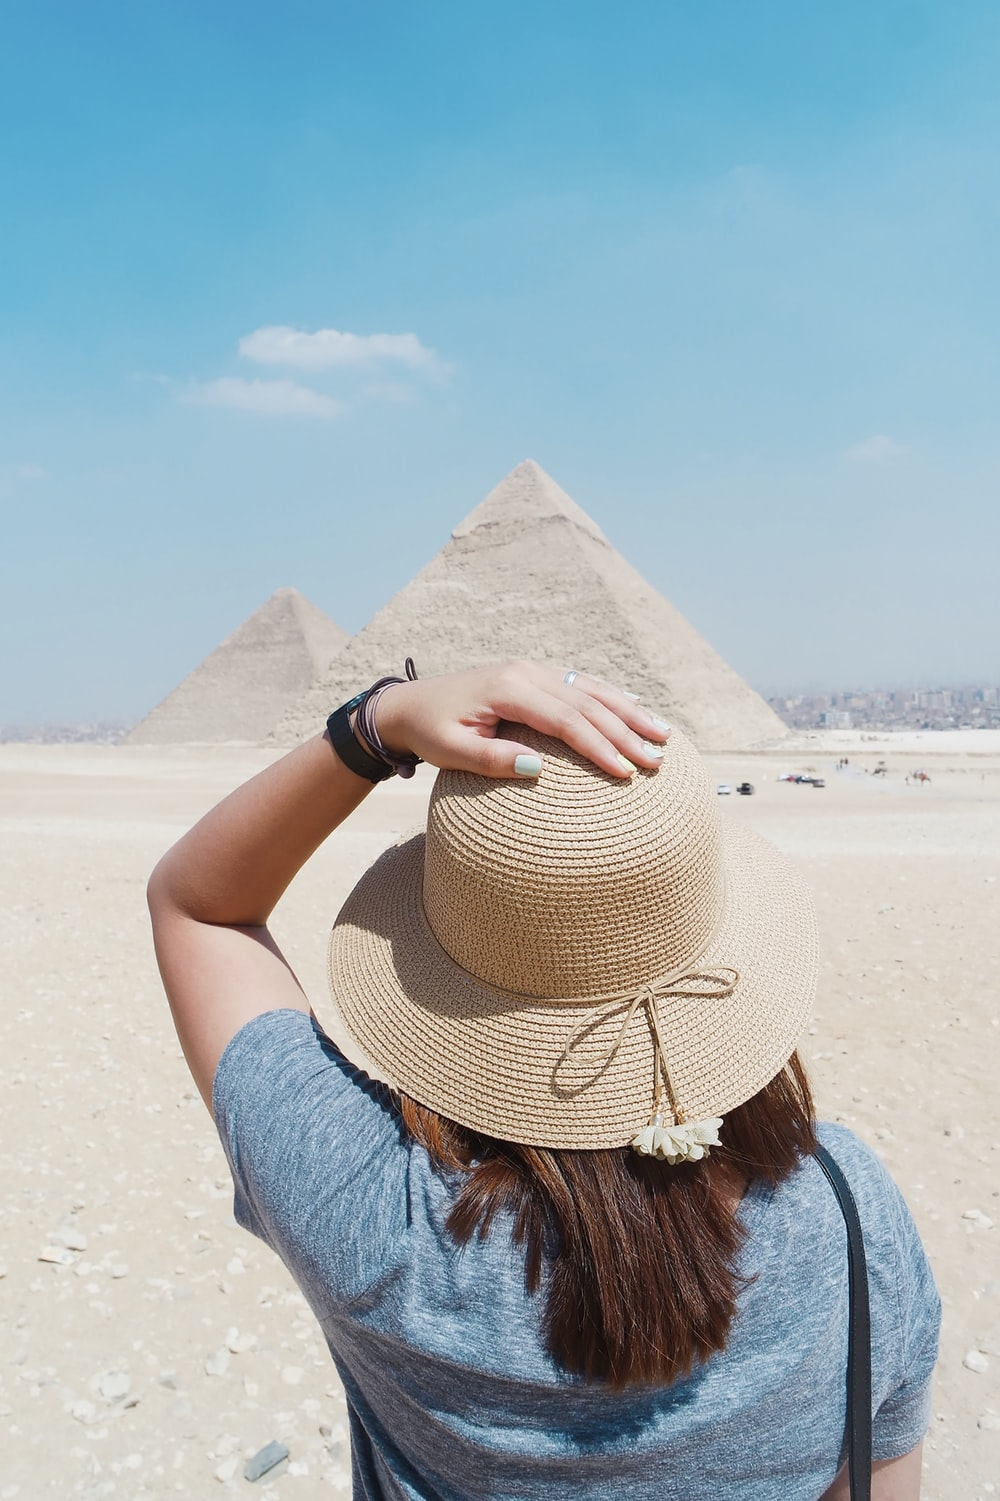 woman in blue top standing in front of Pyramid during daytime